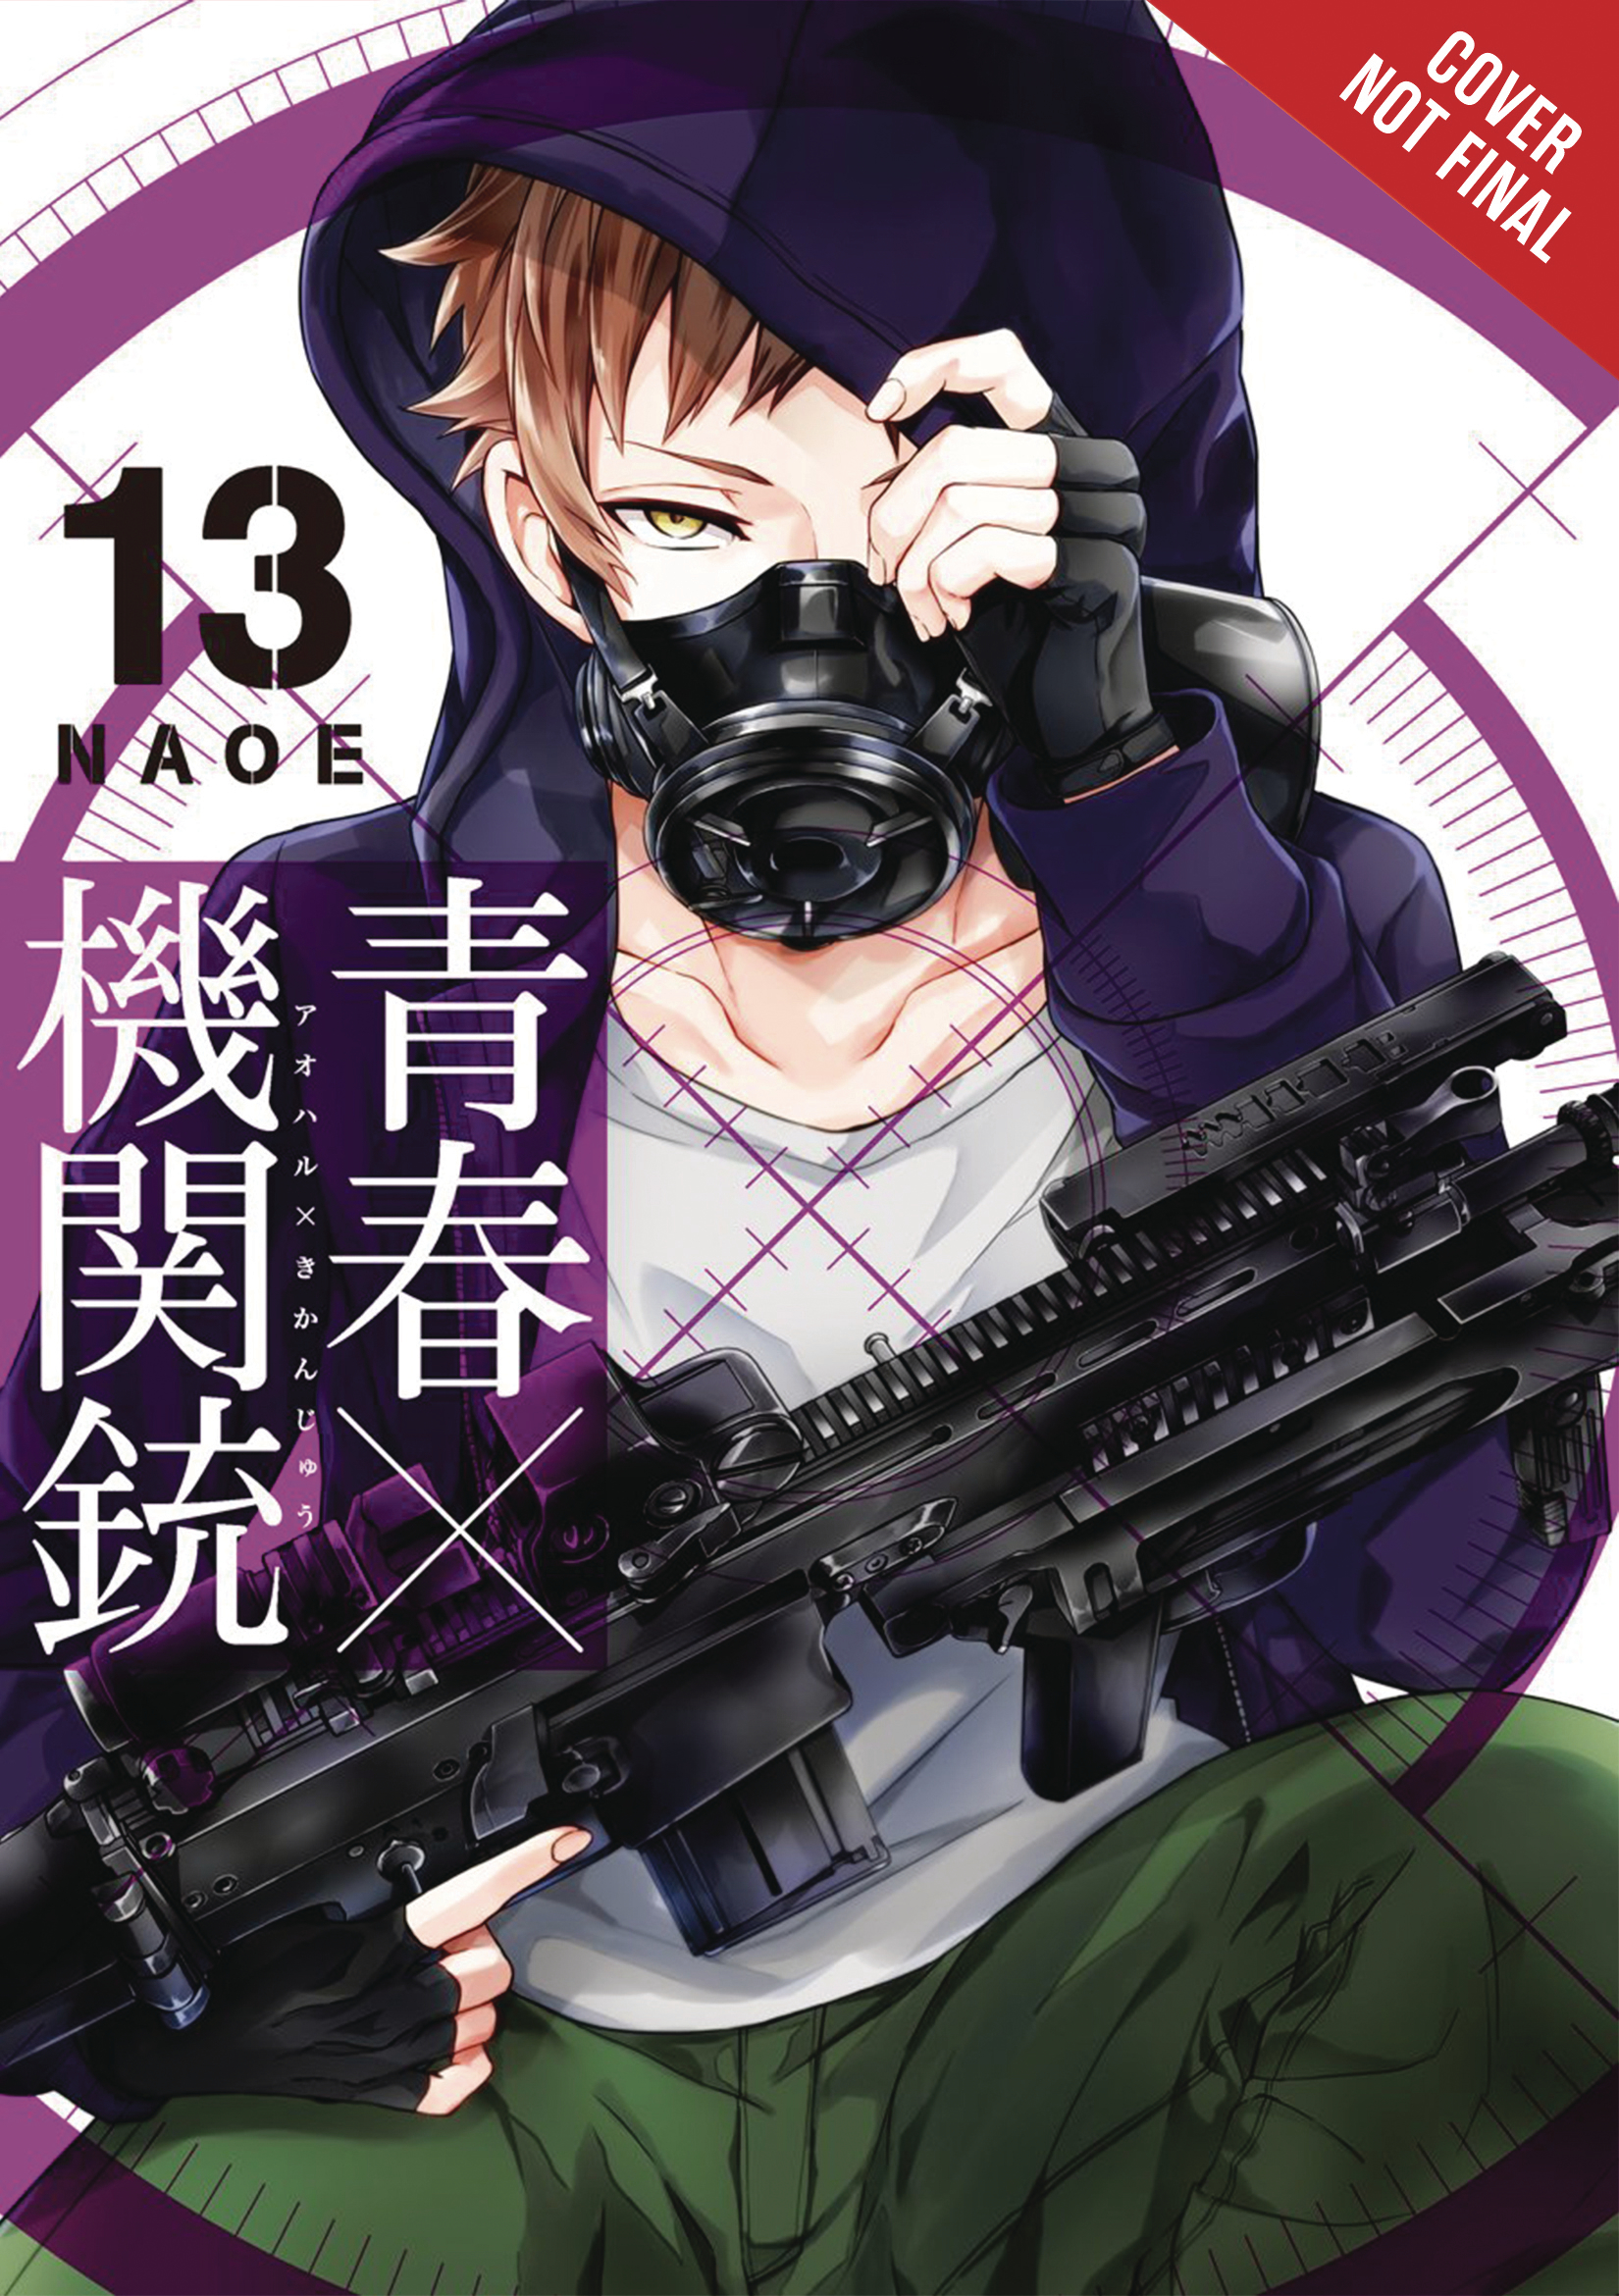 AOHARU X MACHINEGUN GN VOL 13